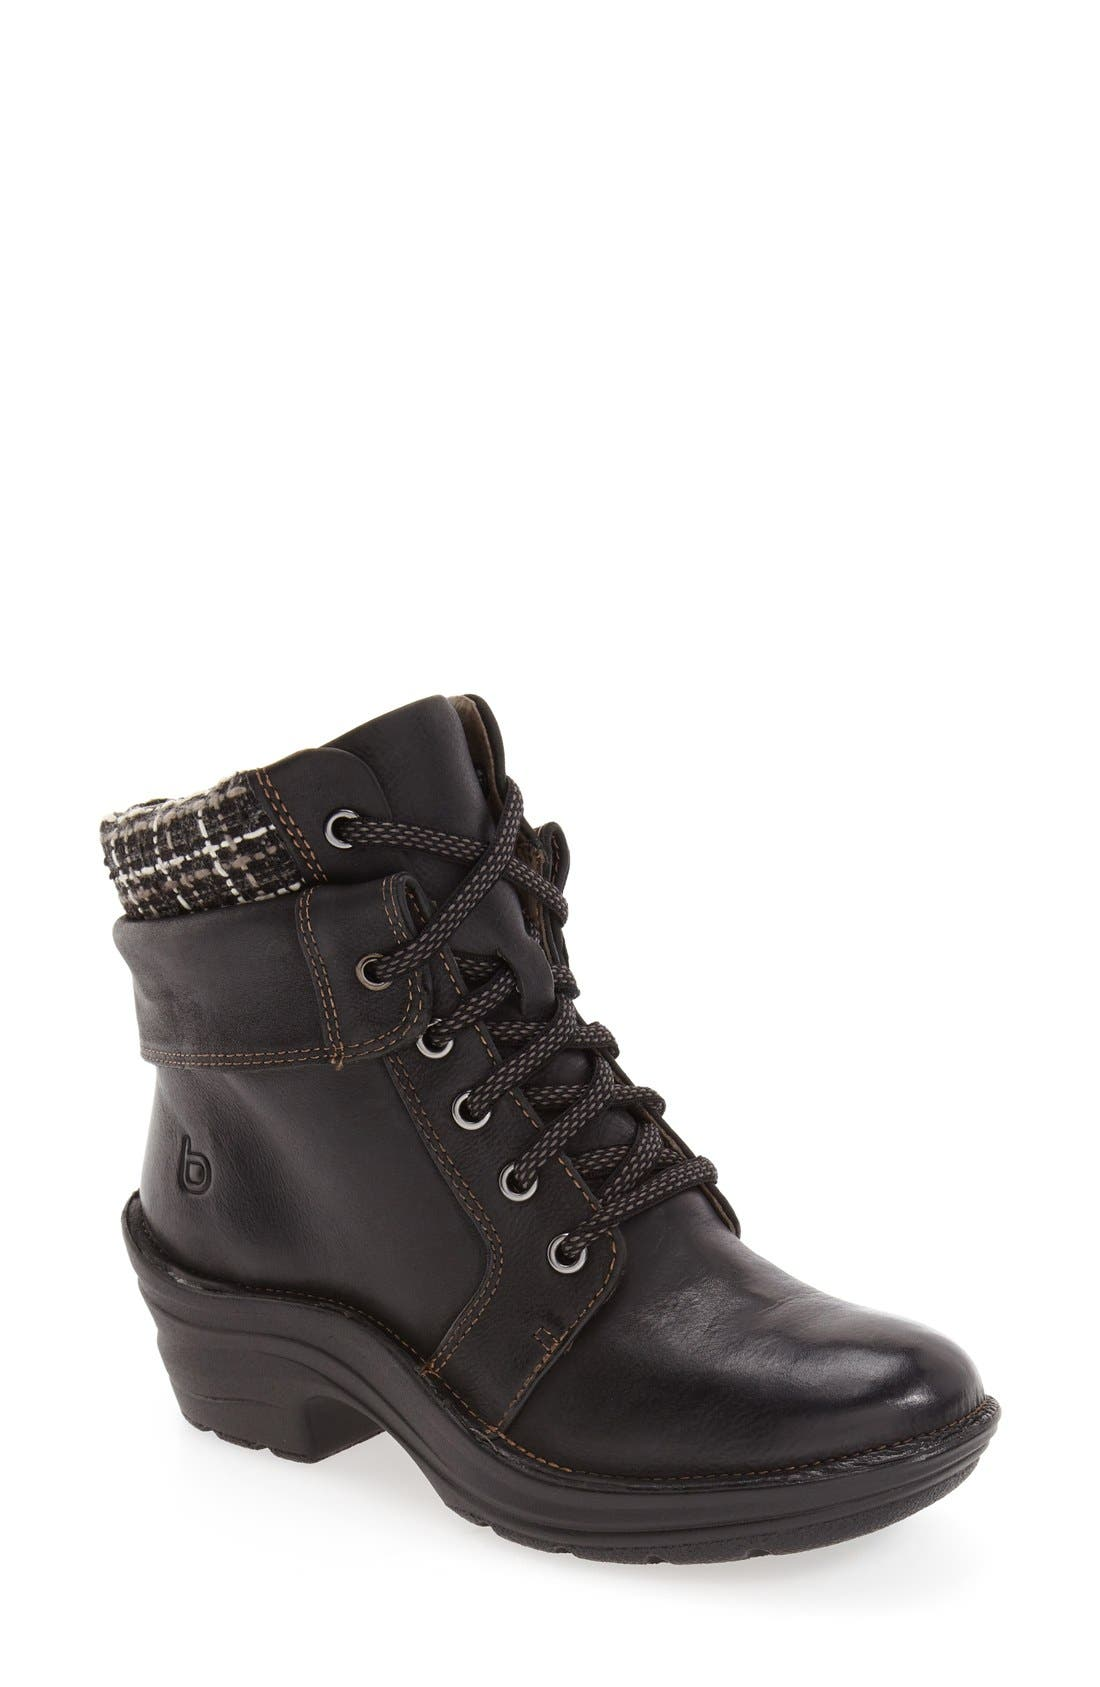 Alternate Image 1 Selected - bionica 'Romulus' Boot (Women)